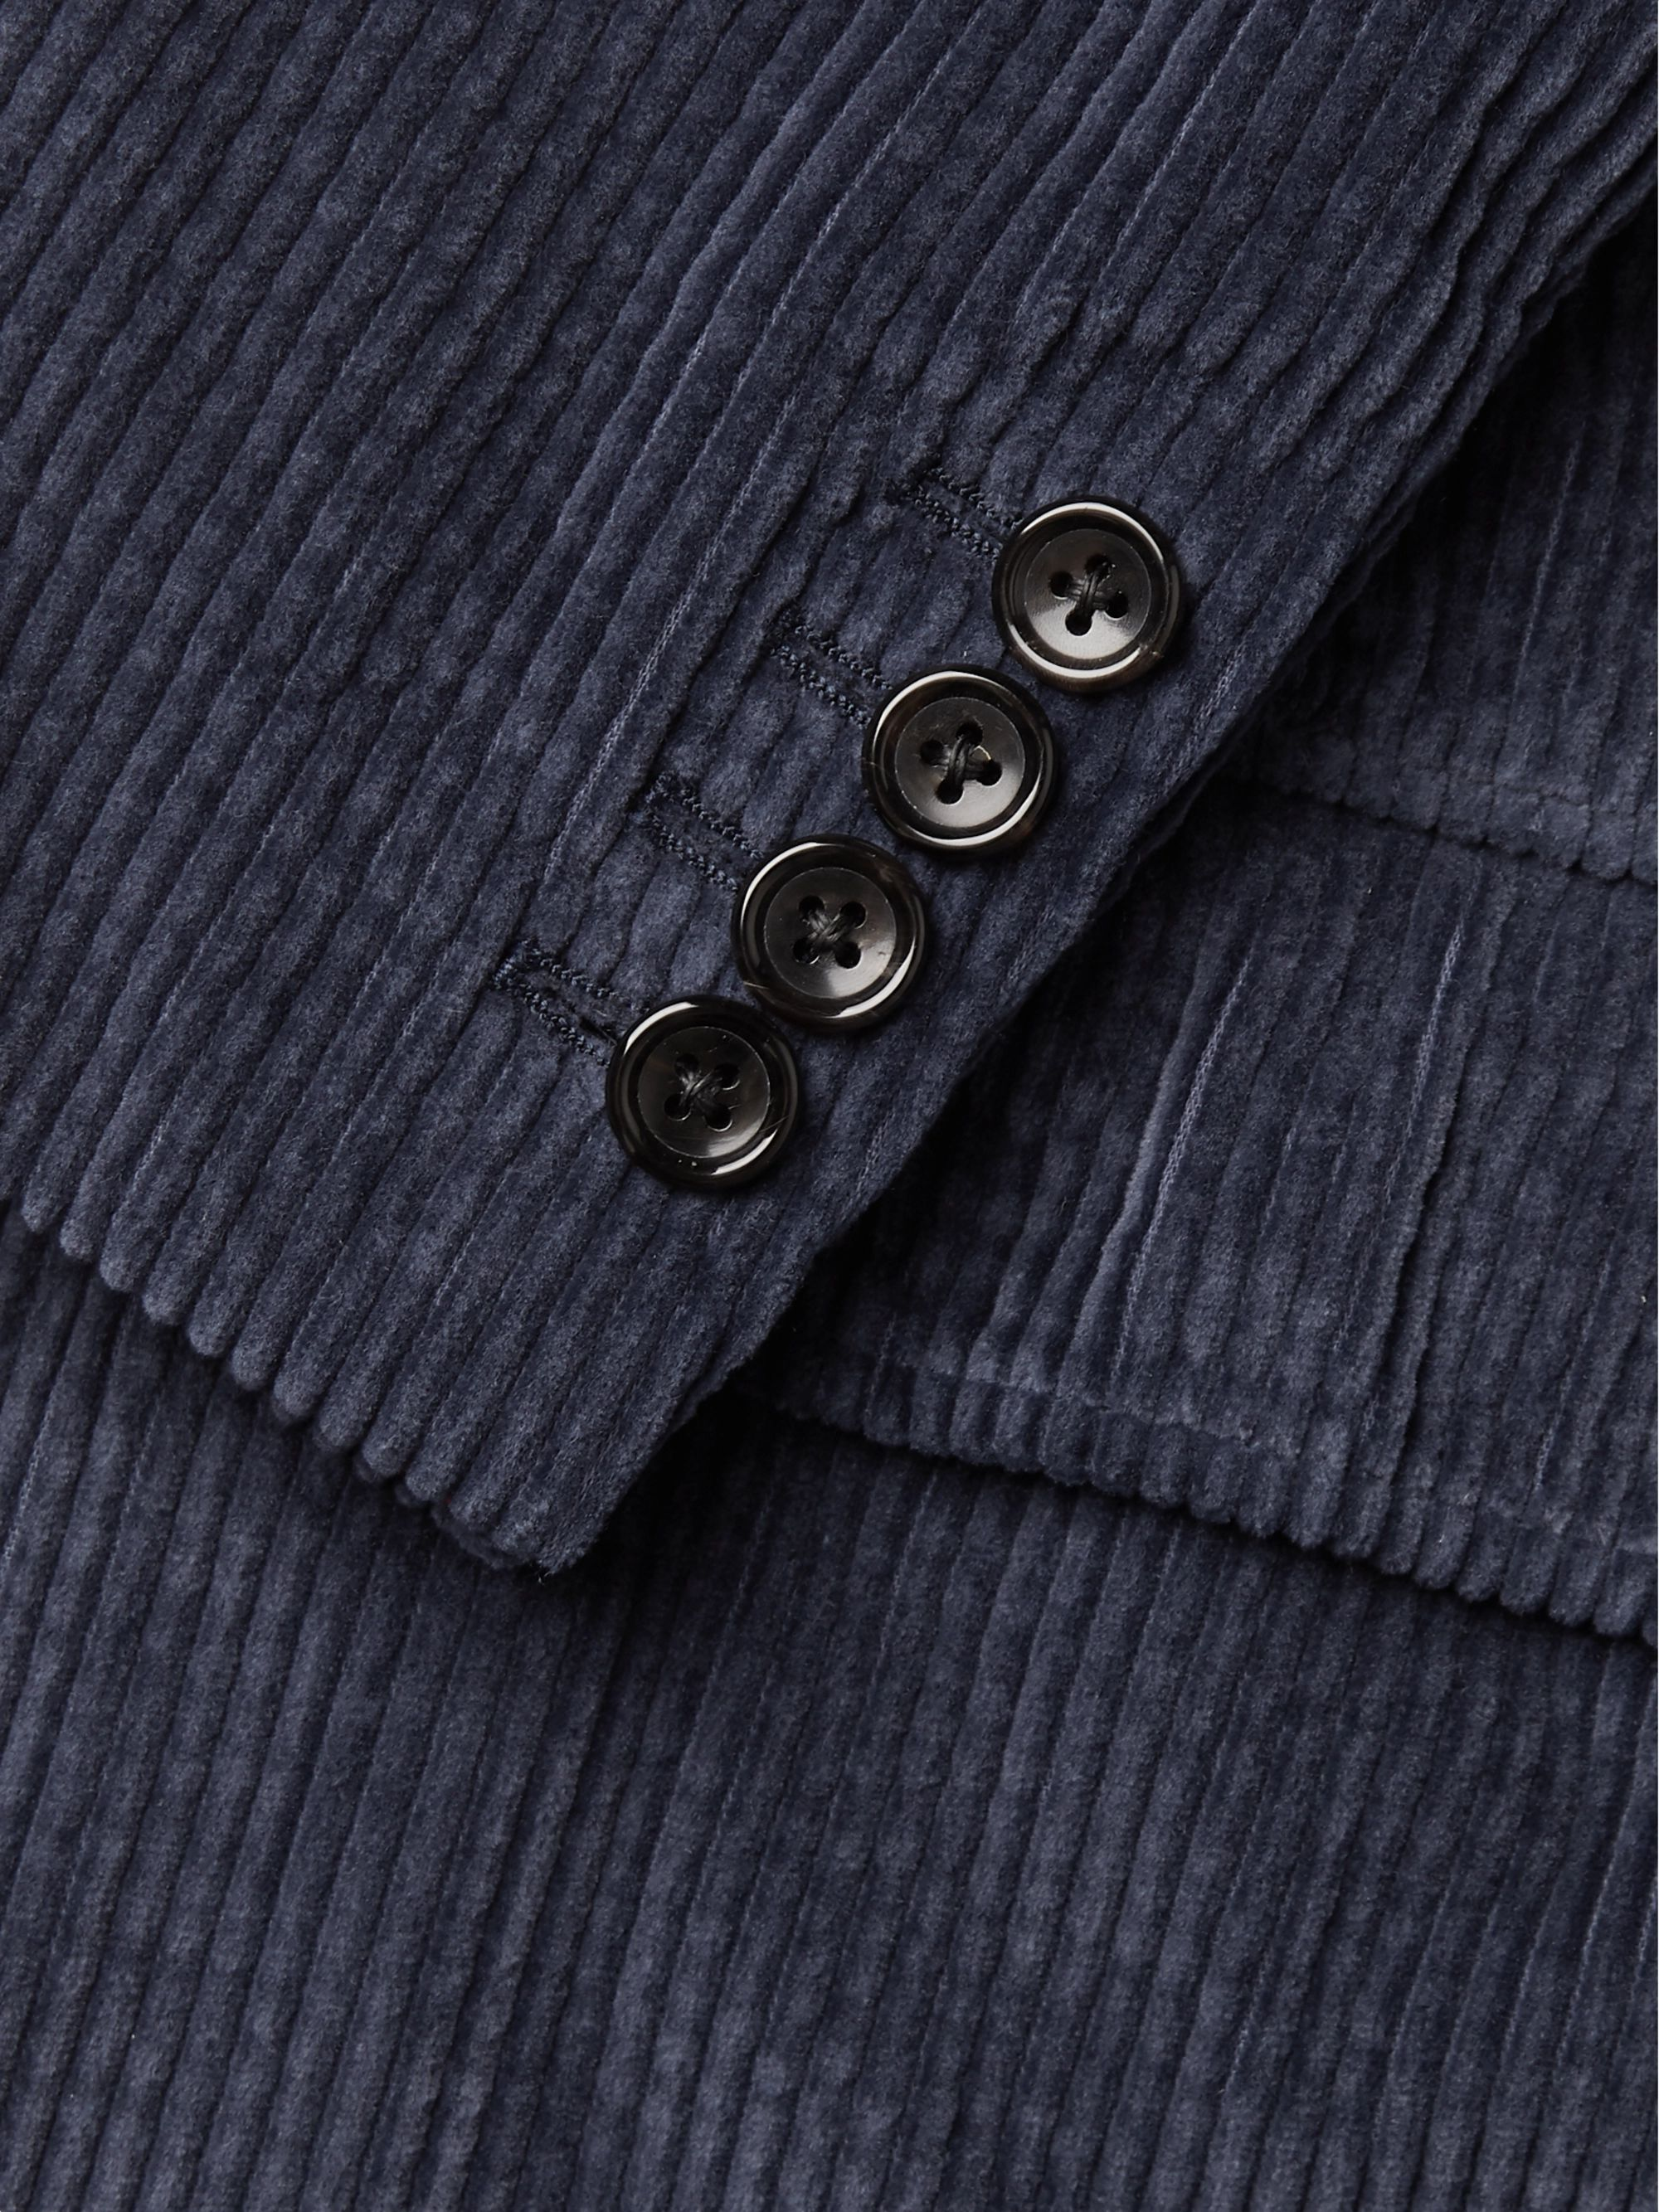 Thom Browne Navy Slim-Fit Unstructured Garment-Dyed Cotton-Corduroy Suit Jacket